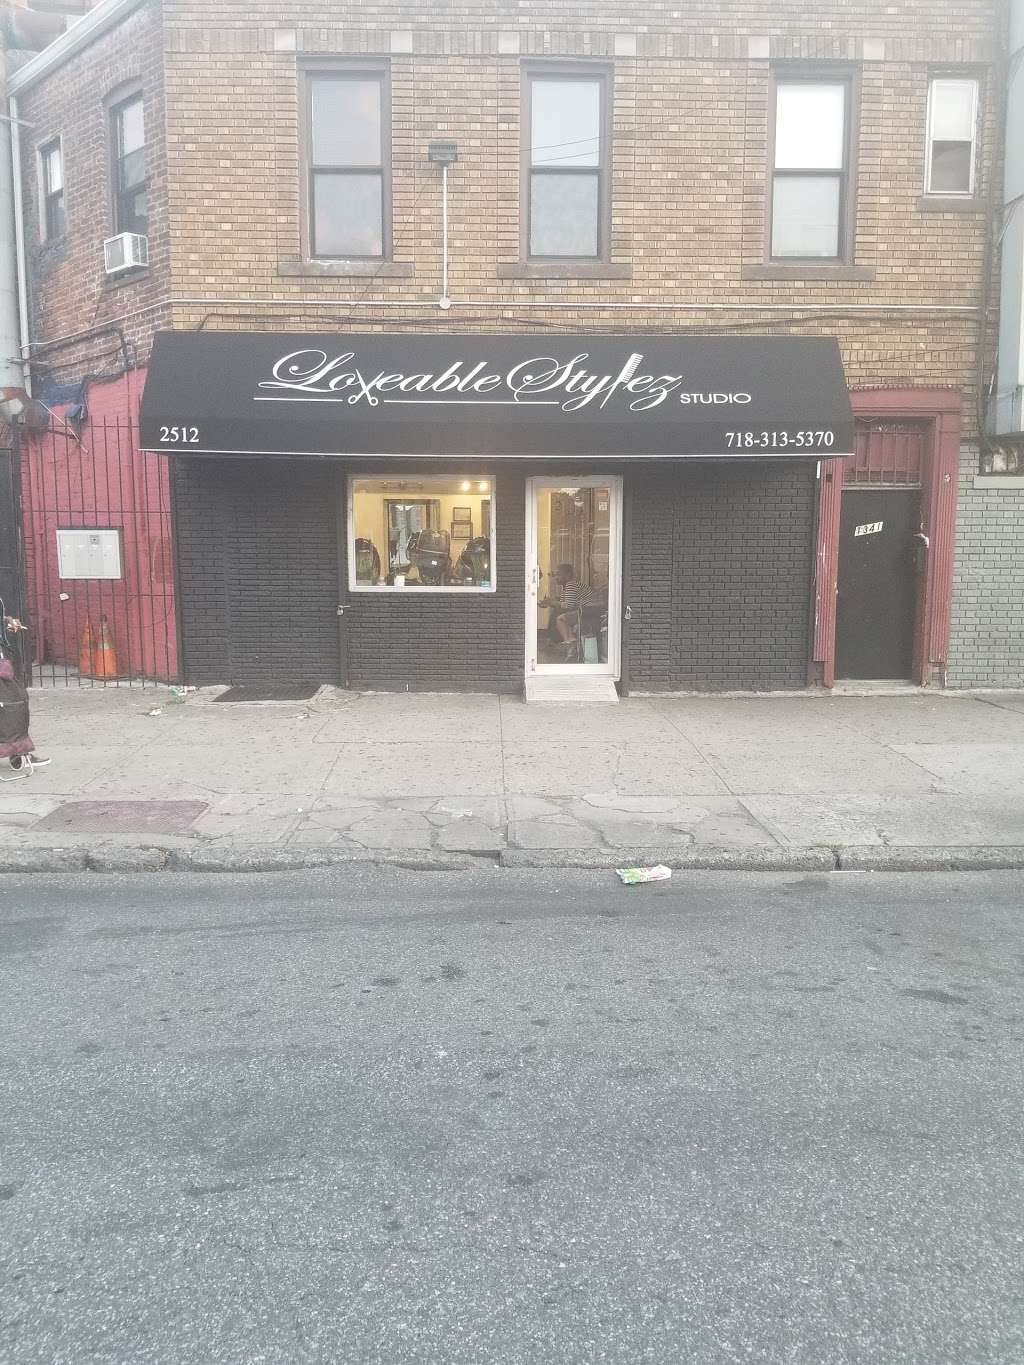 loveable stylez studio - hair care  | Photo 2 of 6 | Address: 2512 Foster Ave, Brooklyn, NY 11210, USA | Phone: (718) 313-5370